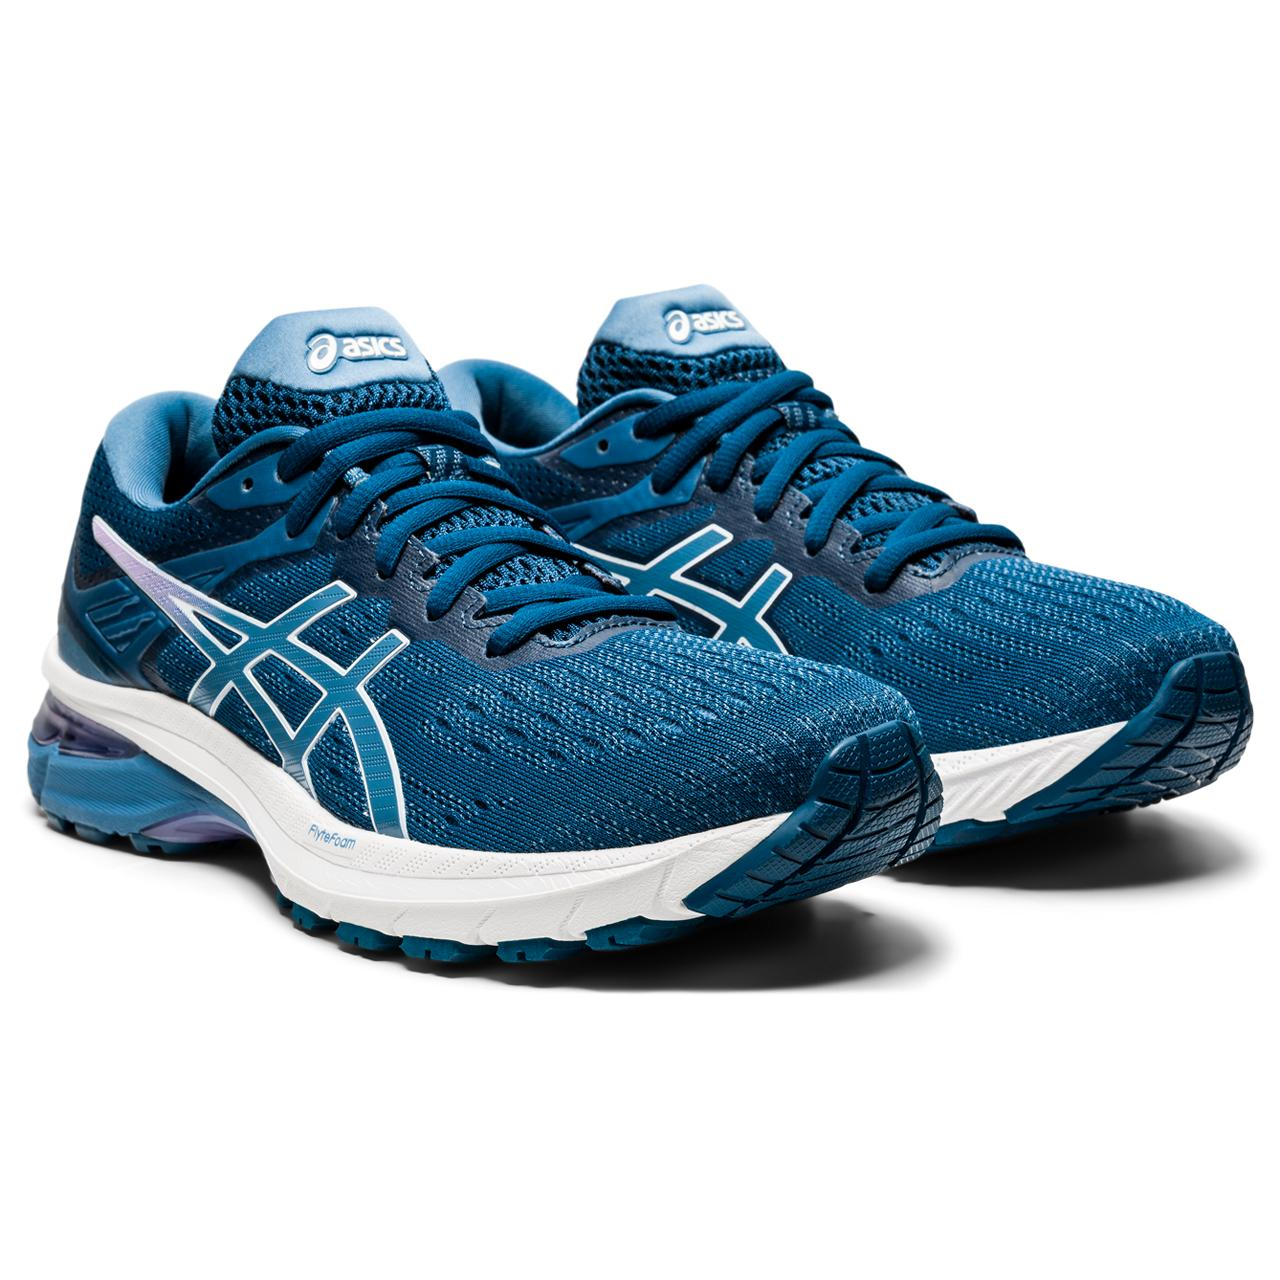 'ASICS' Women's GT 2000 9 - Mako Blue / Grey Floss